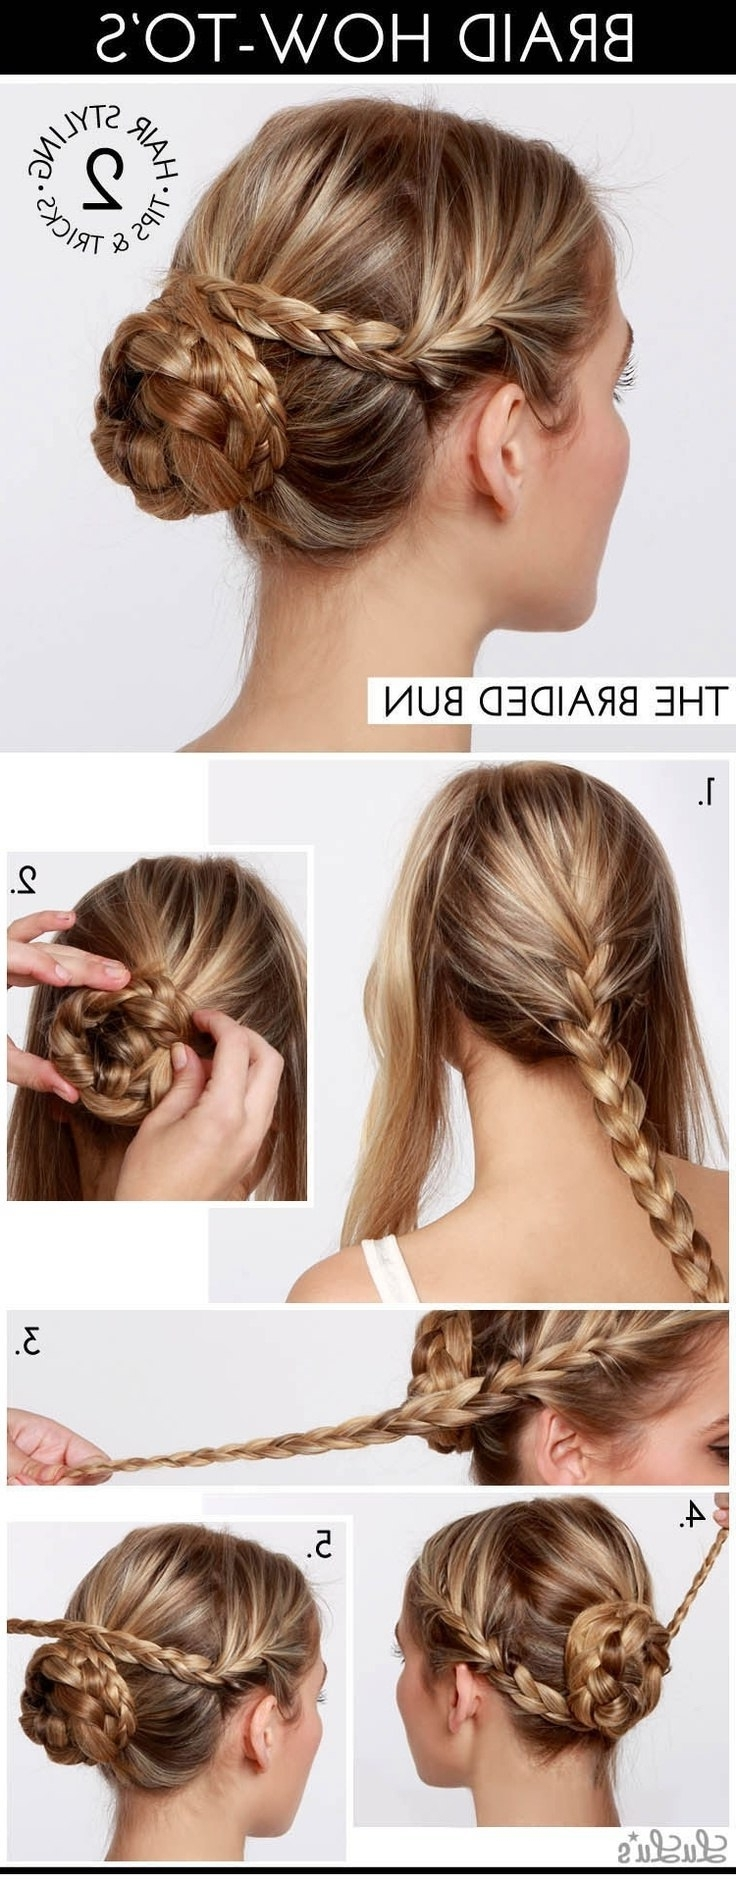 20 Cute And Easy Braided Hairstyle Tutorials Intended For Easy Braided Updos For Medium Hair (View 13 of 15)